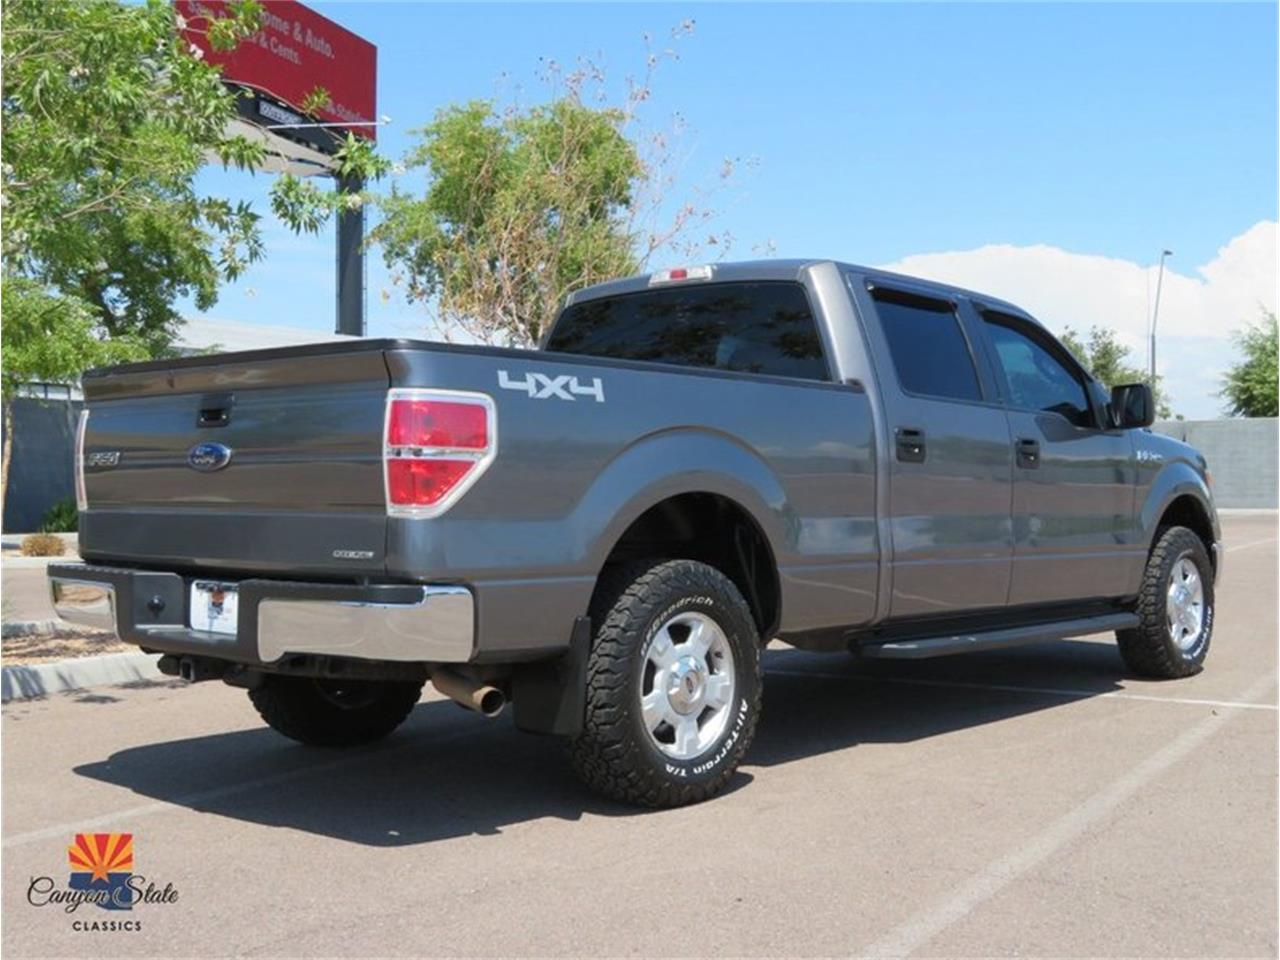 2014 Ford F150 for sale in Tempe, AZ – photo 36